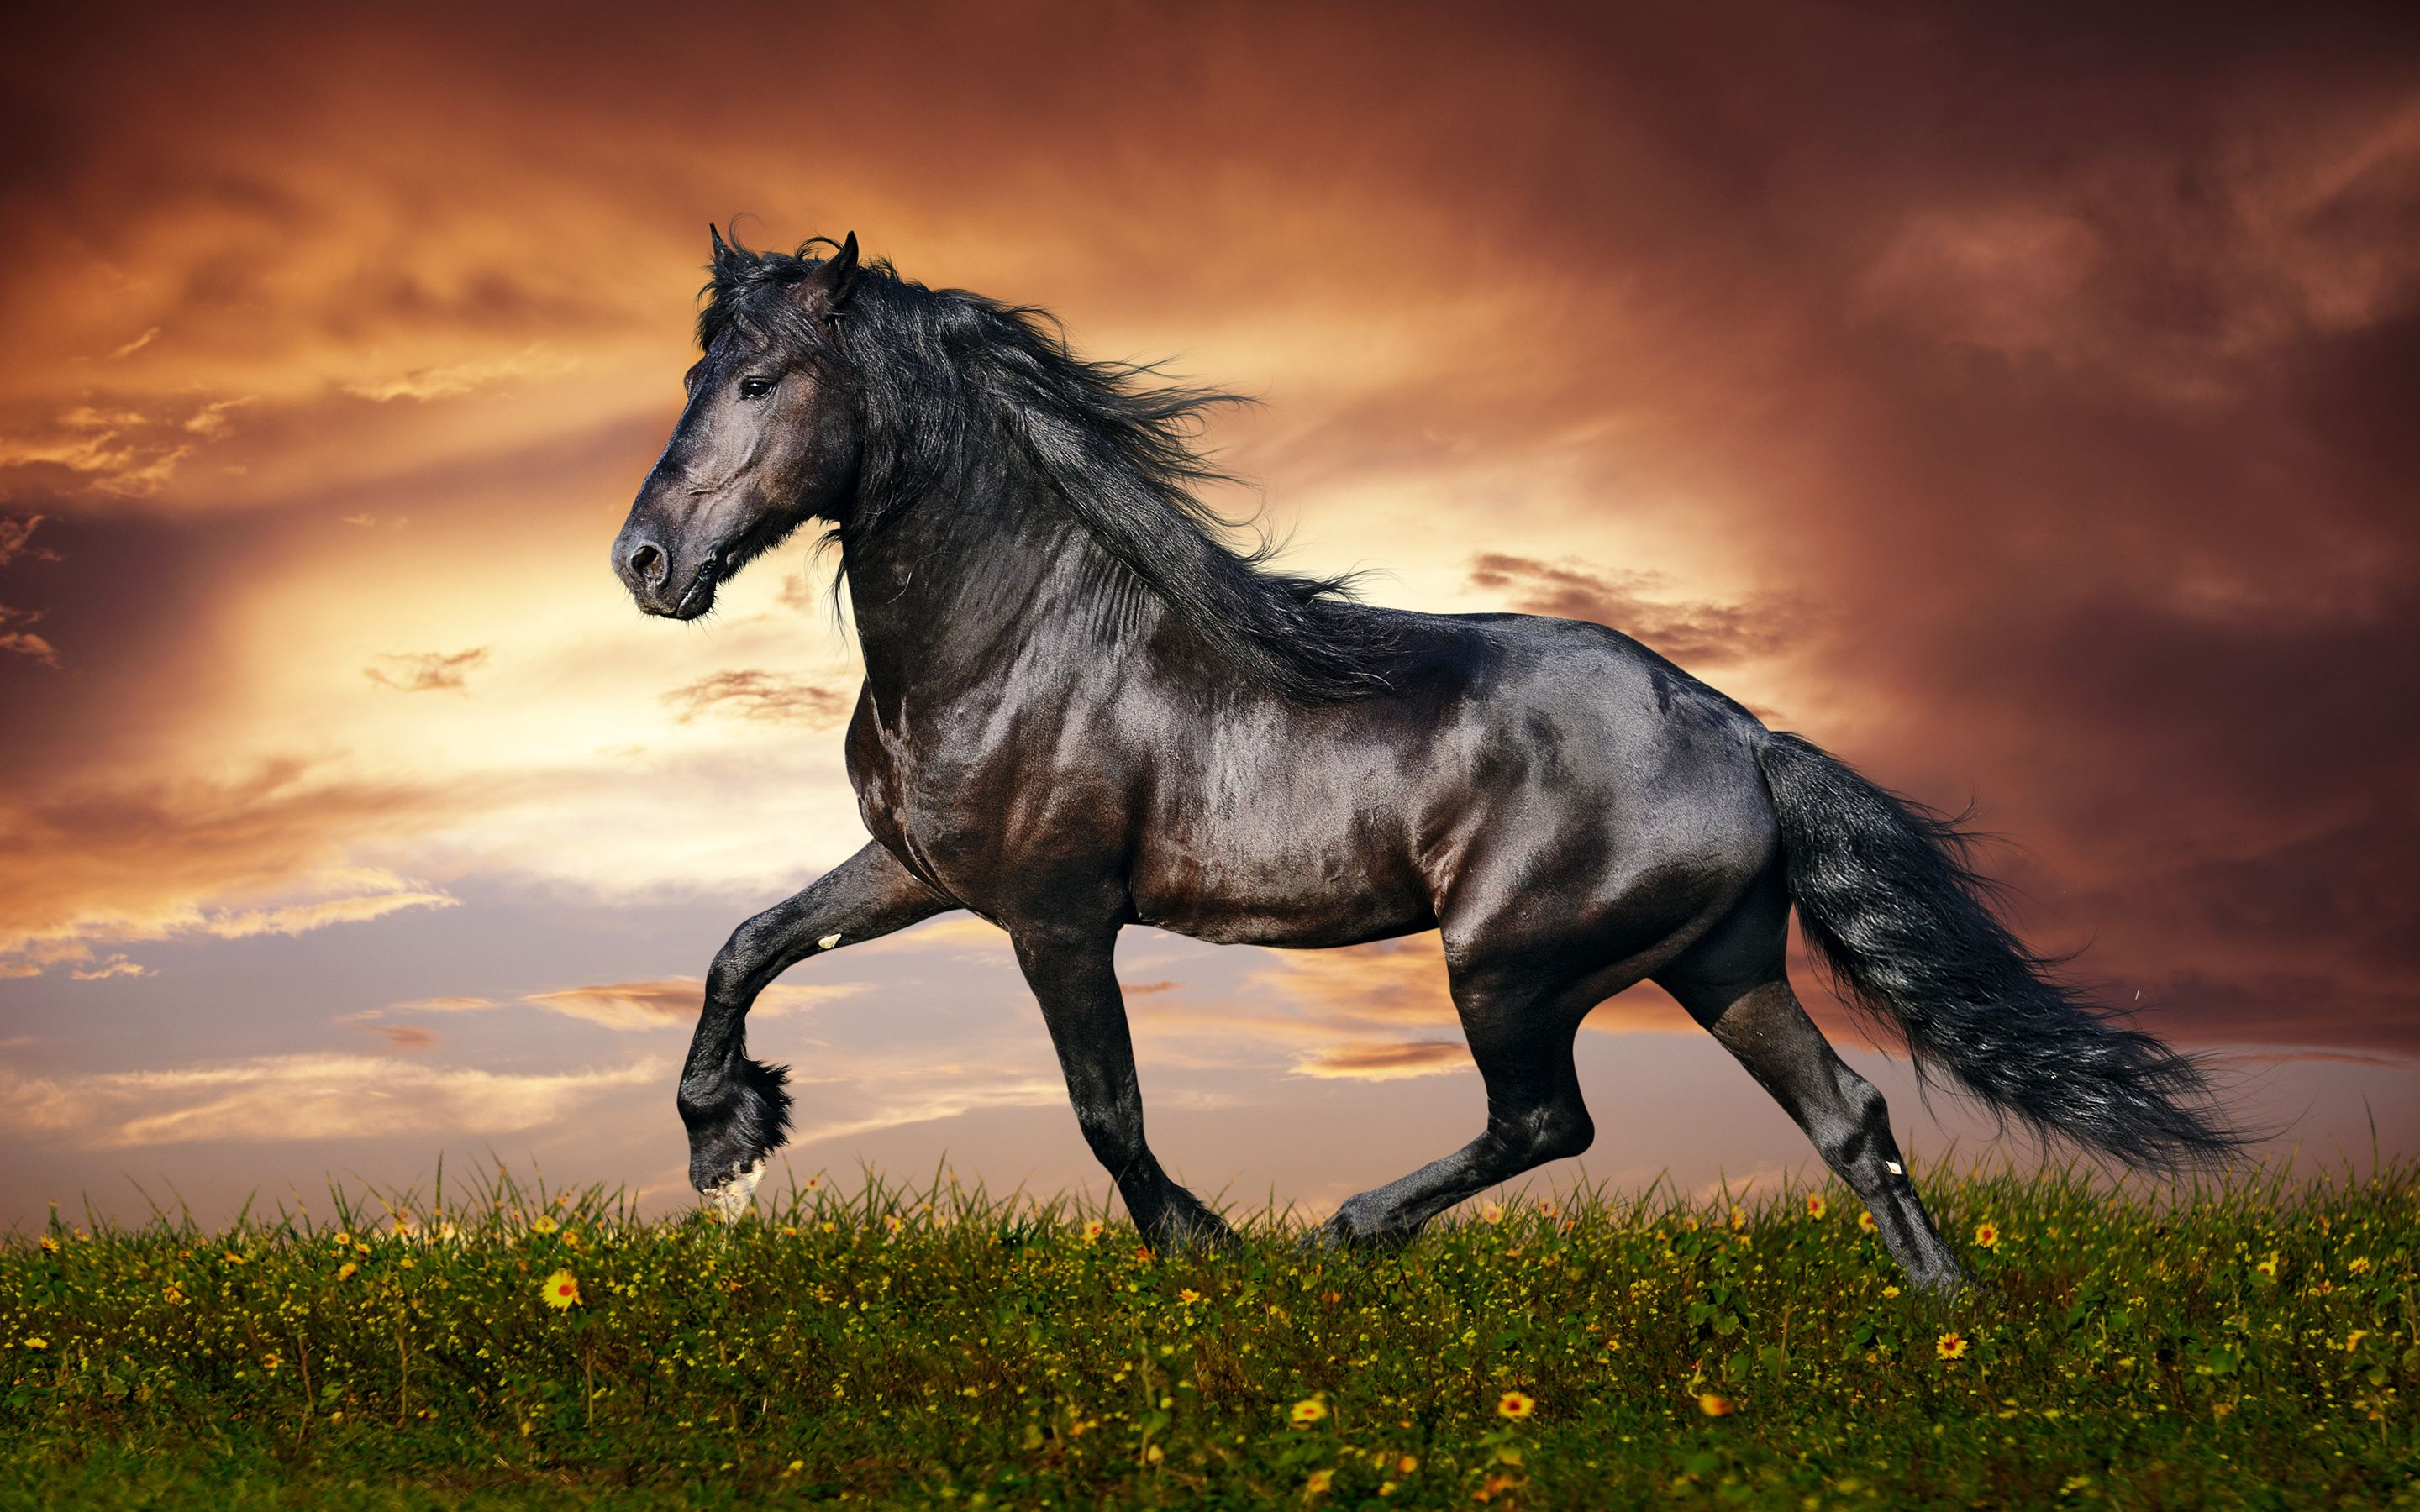 35 Most Beautiful Horse Pictures and Images | Horses: Real and Collectible | Horses, Horse ...